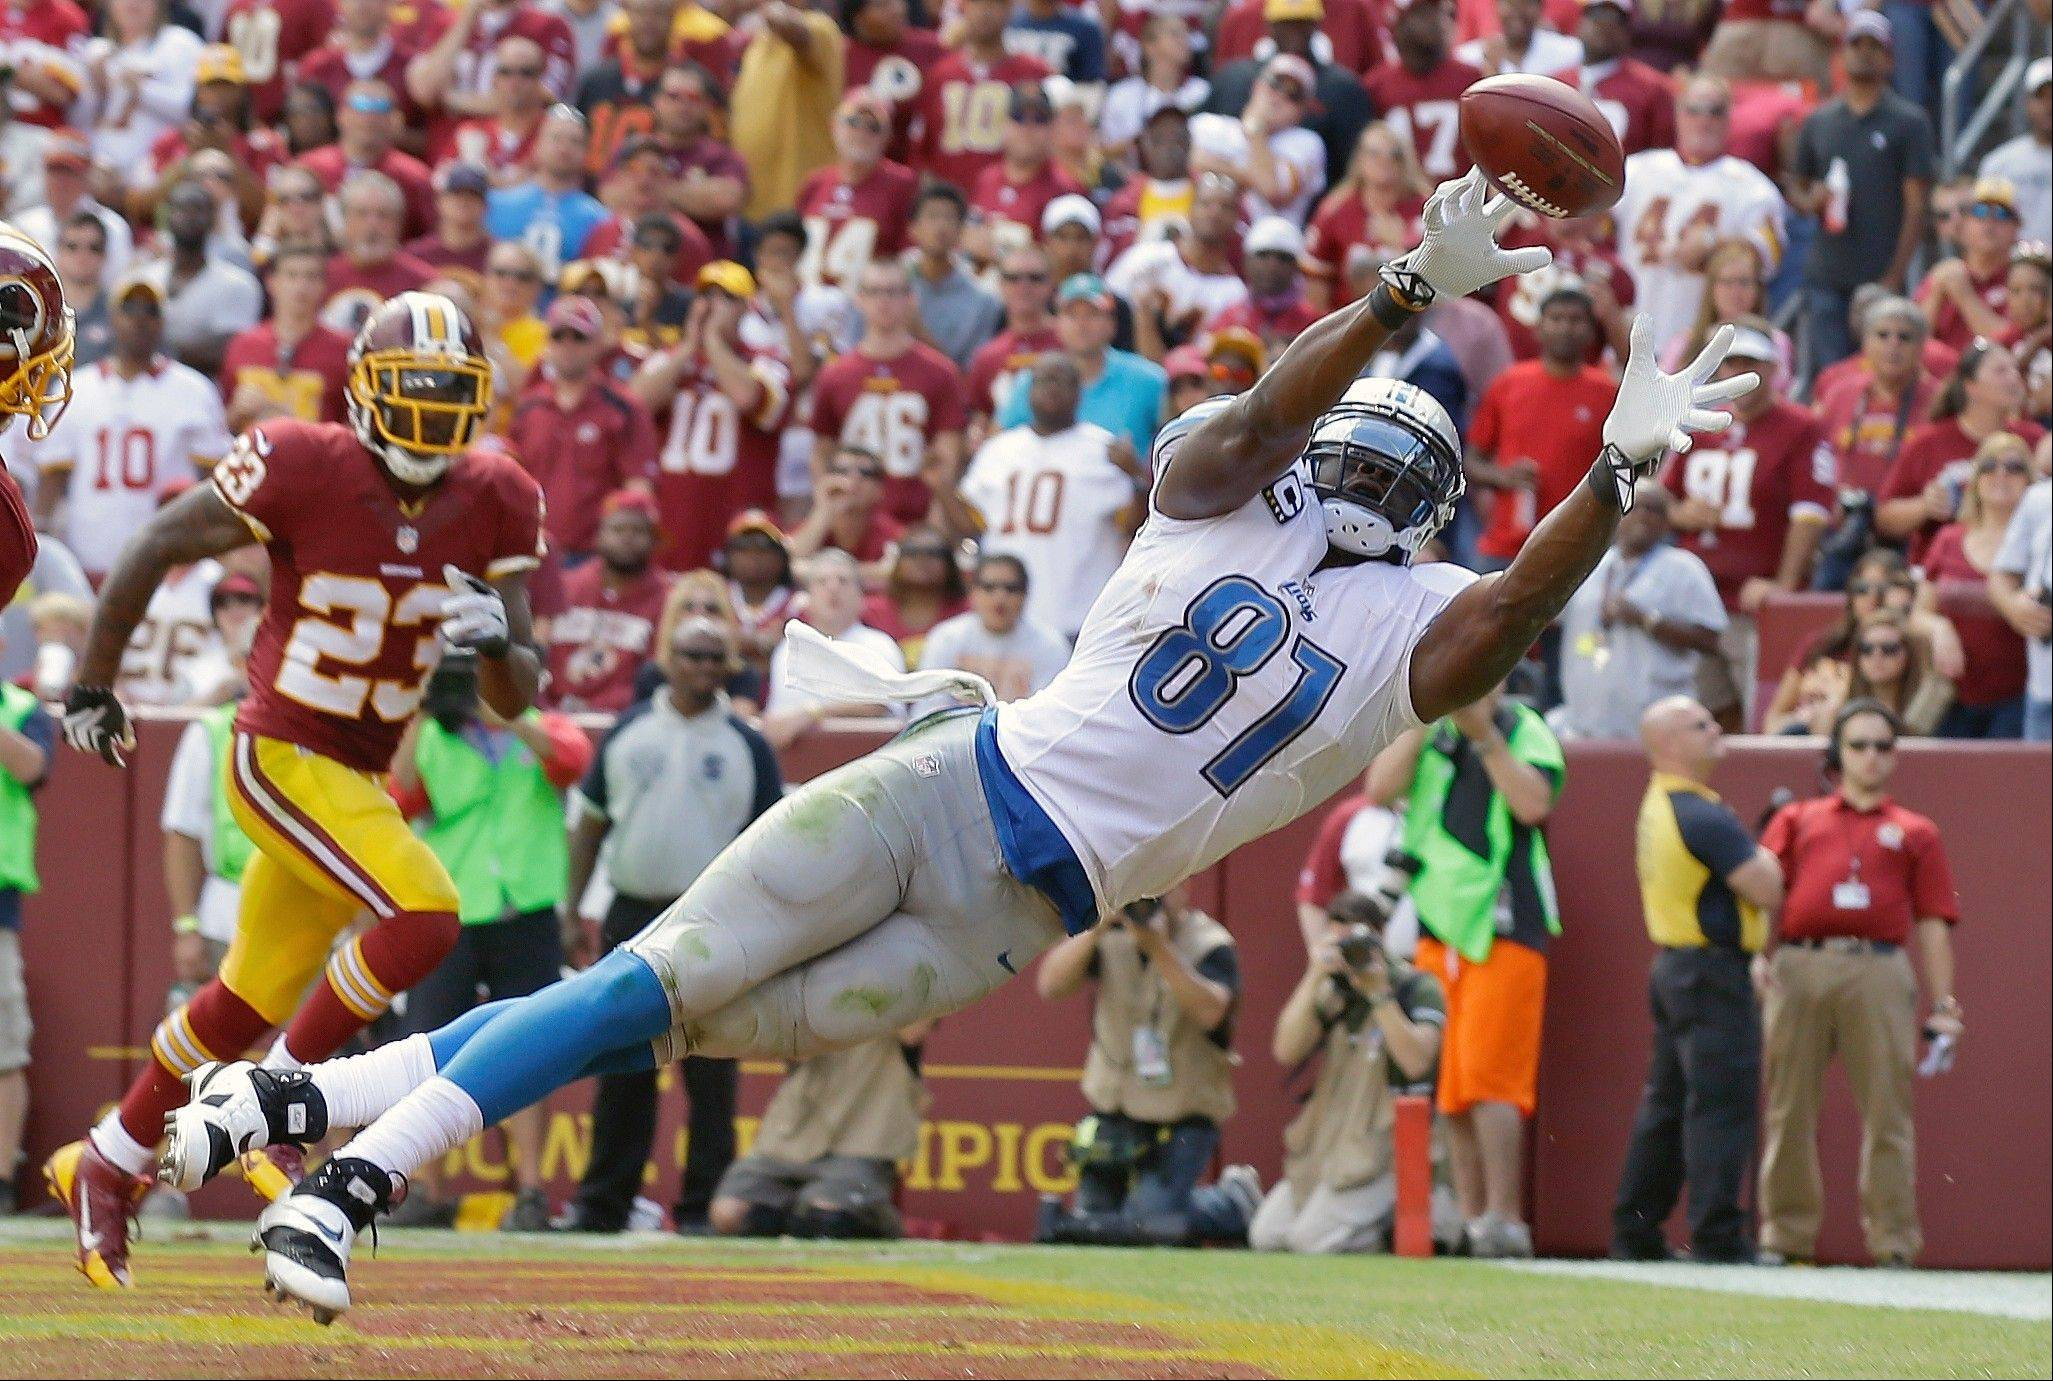 Detroit Lions tight end Brandon Pettigrew can't quite reach a Matthew Stafford pass in the end zone as Washington Redskins cornerback DeAngelo Hall watches in the background during the first half of a NFL football game in Landover, Md., Sunday, Sept. 22, 2013.